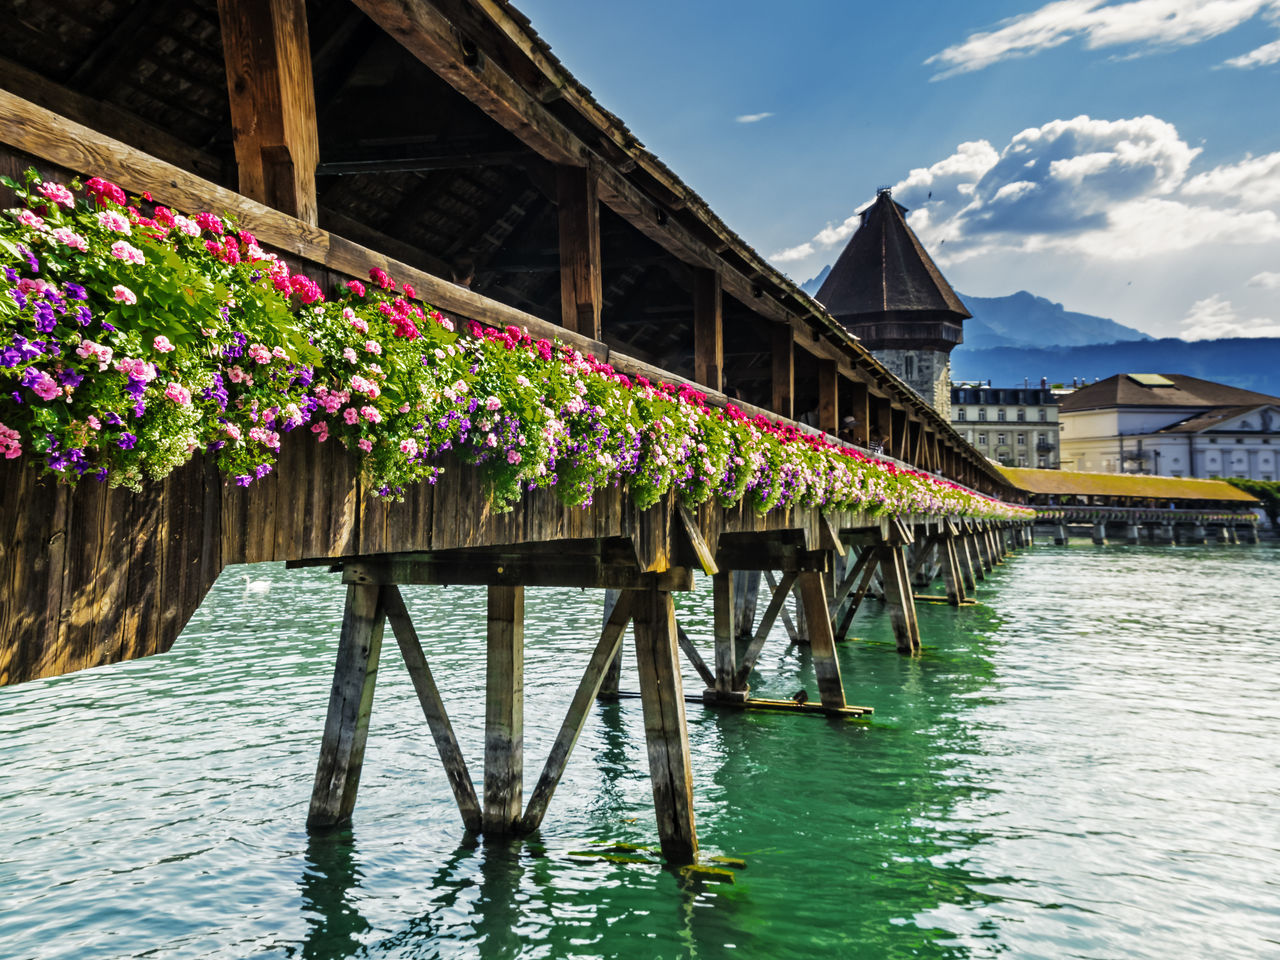 The monastery bridge Architecture Bridge Bridge - Man Made Structure Building Exterior Built Structure Connection Day Flower Lake Multi Colored Nature No People Outdoors Sky Sunlight Travel Destinations Water